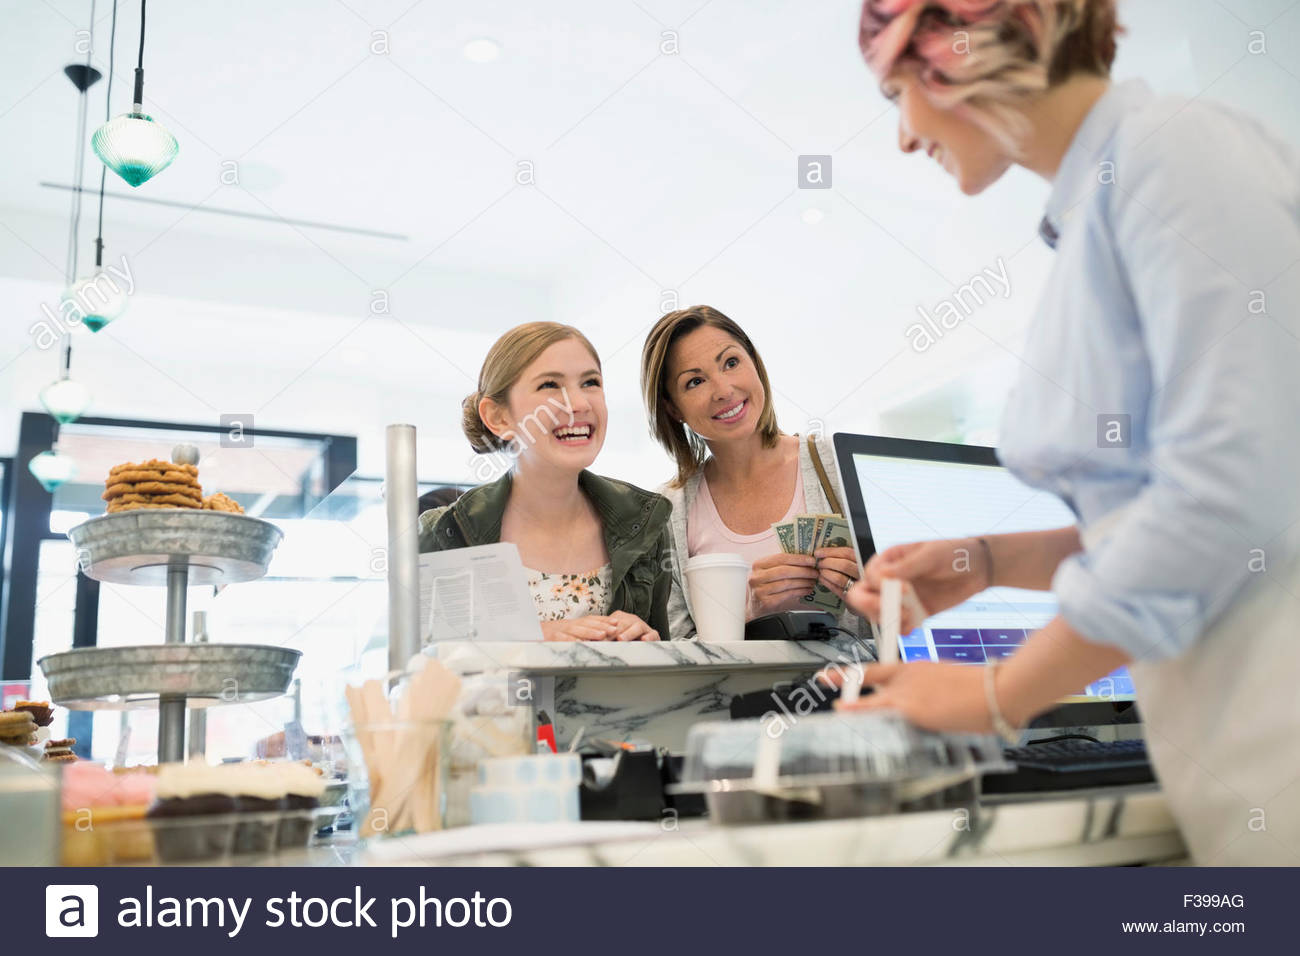 Mother and daughter buying pastries in bakery - Stock Image